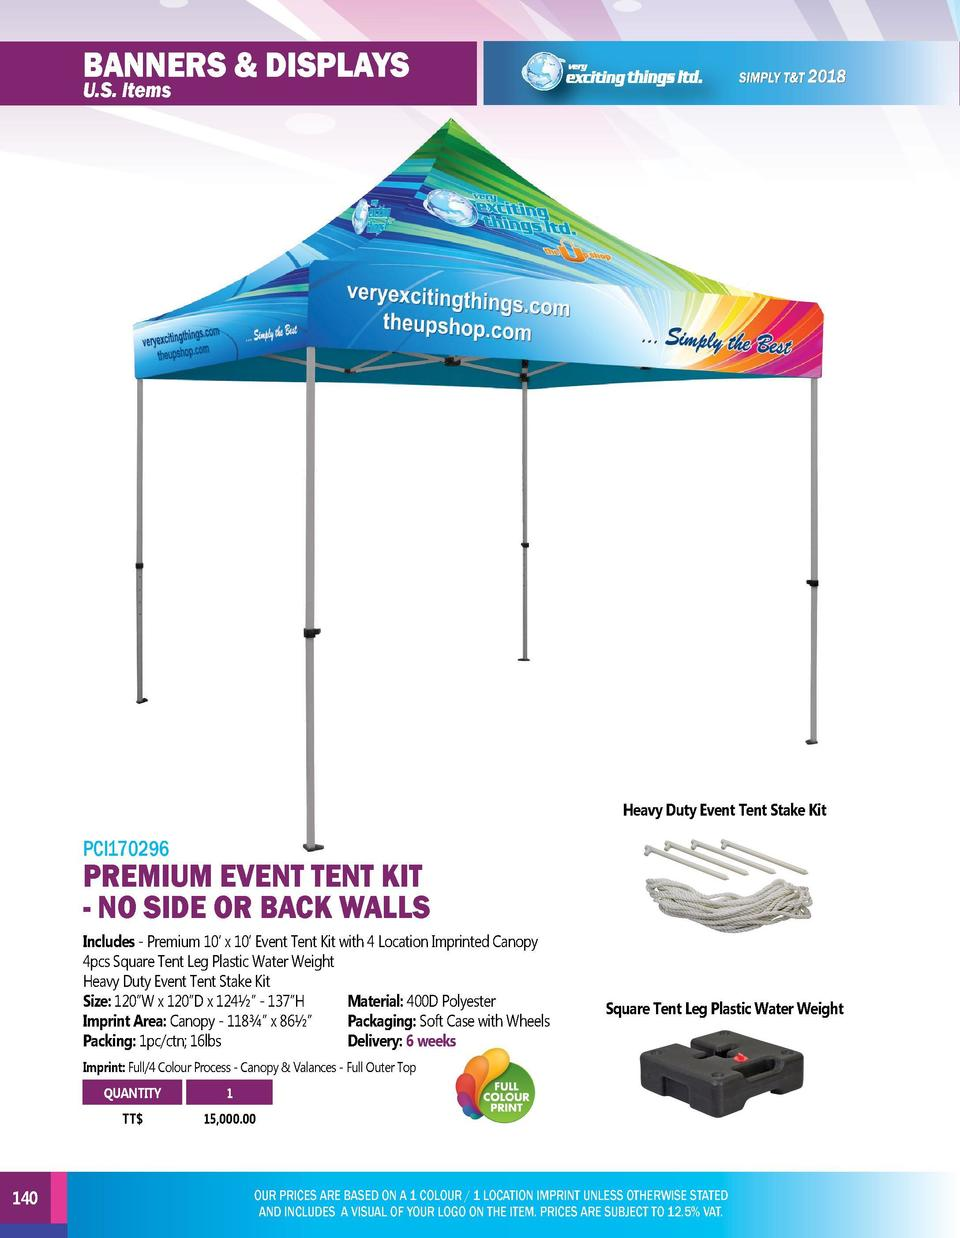 BANNERS   DISPLAYS  BANNERS   DISPLAYS  U.S. Items  U.S. Items  PCI170297  Heavy Duty Event Tent Stake Kit  PCI170296  PRE...